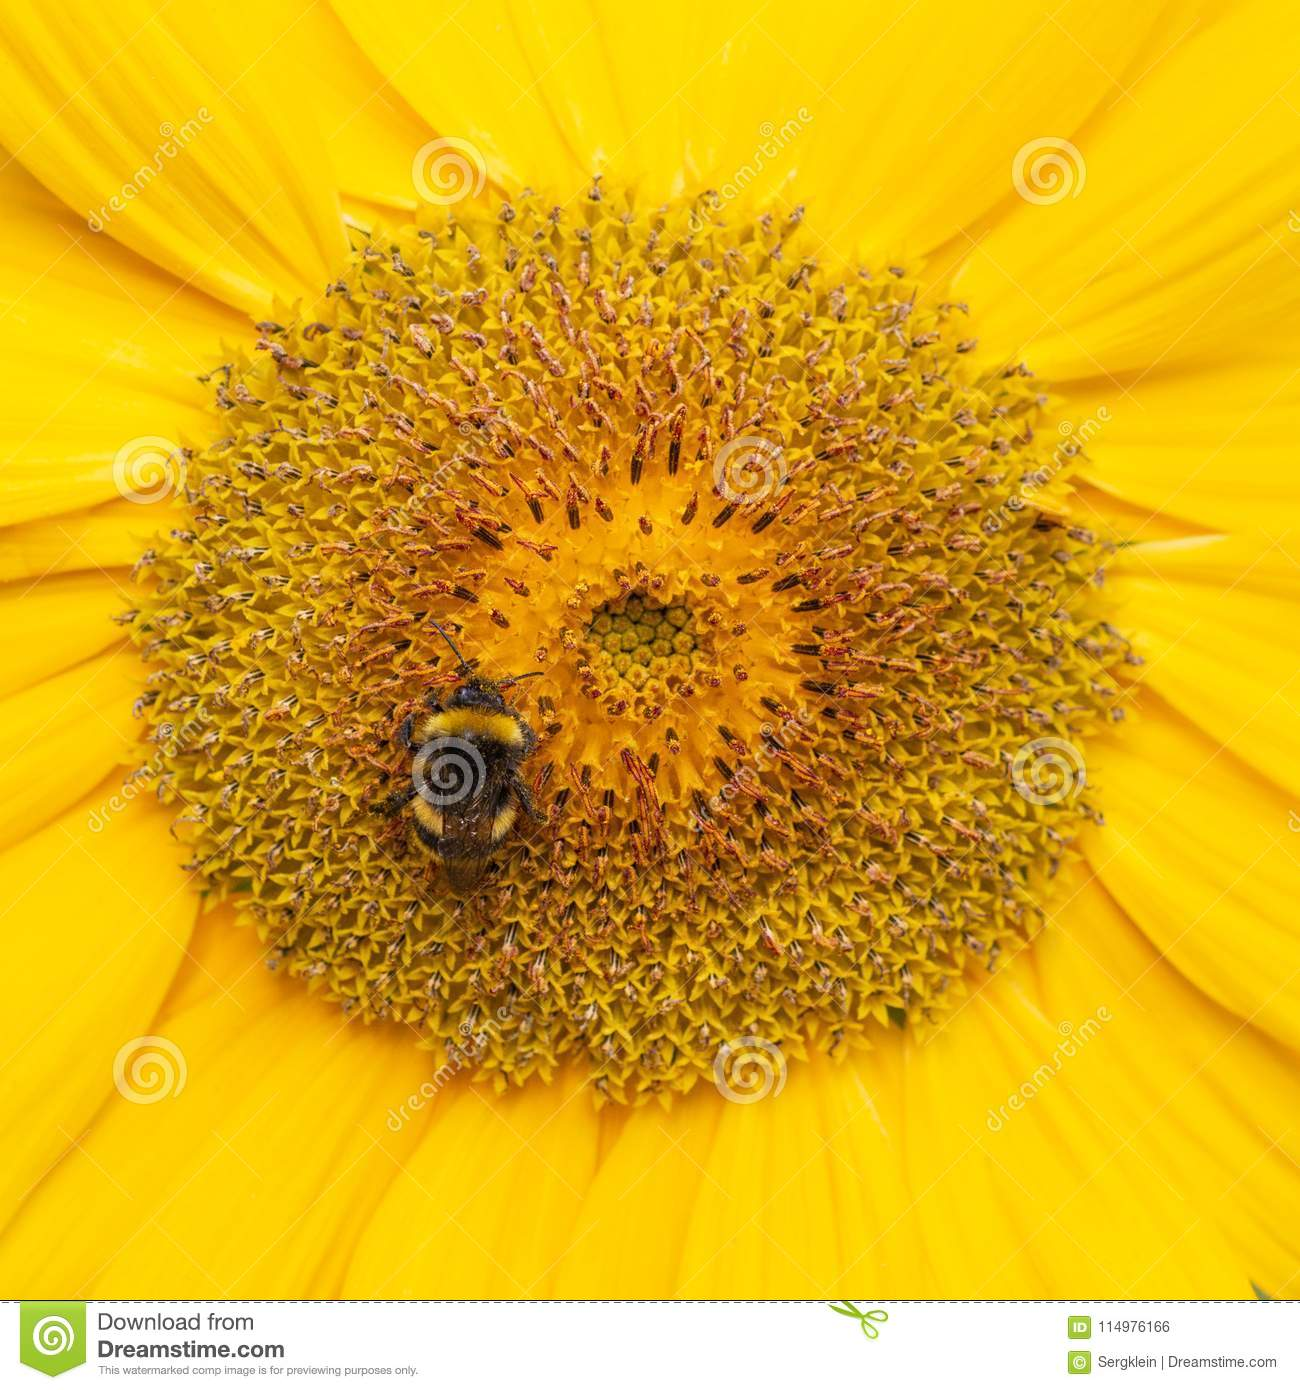 A Bee hovering while collecting pollen from sunflower blossom